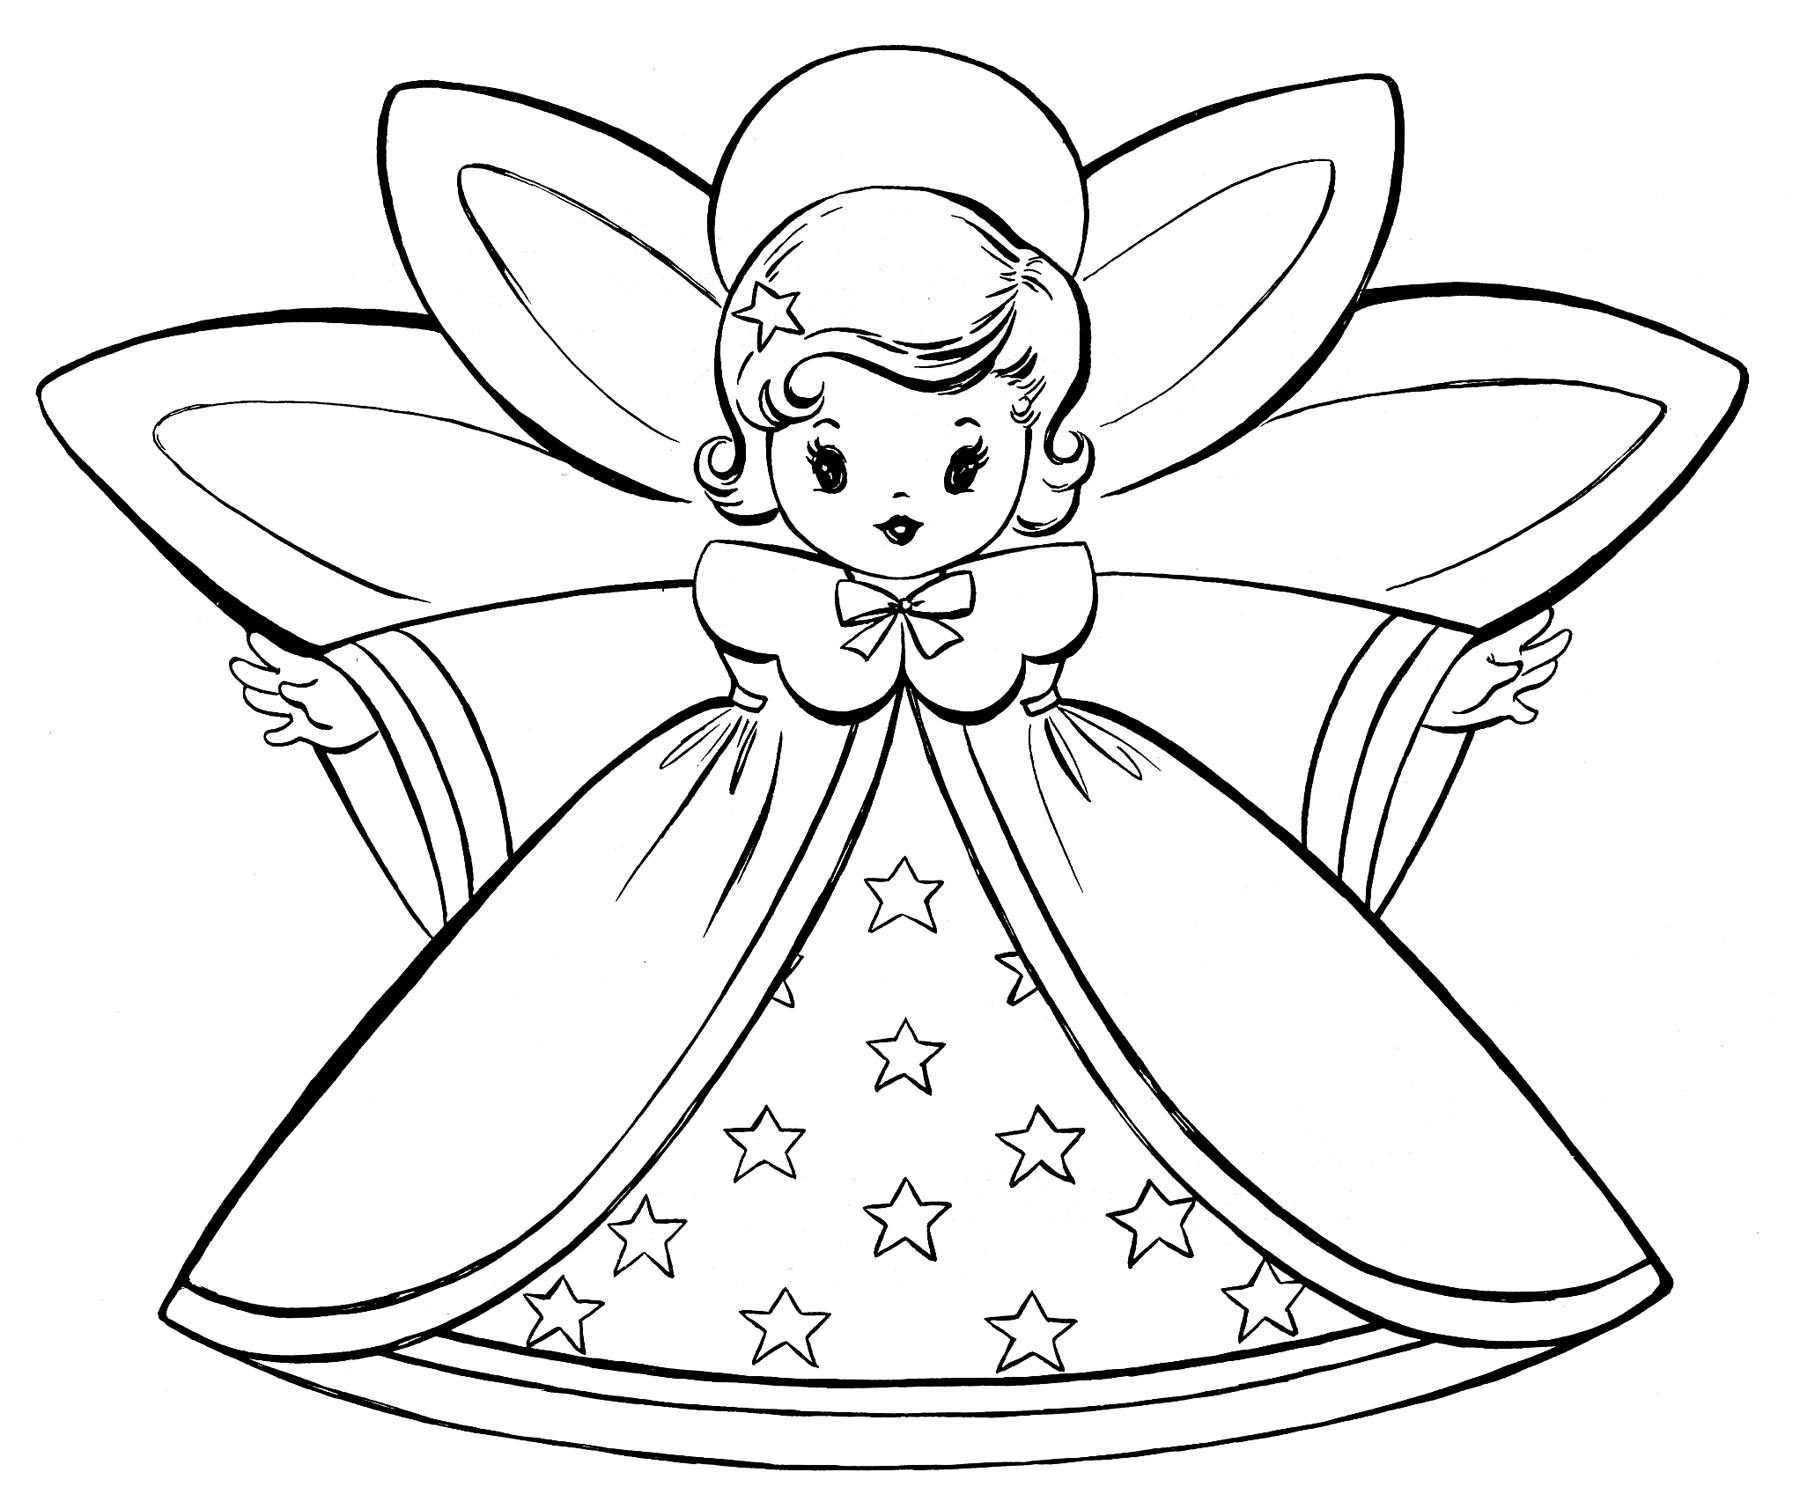 angel coloring sheets angel coloring pages angel coloring sheets